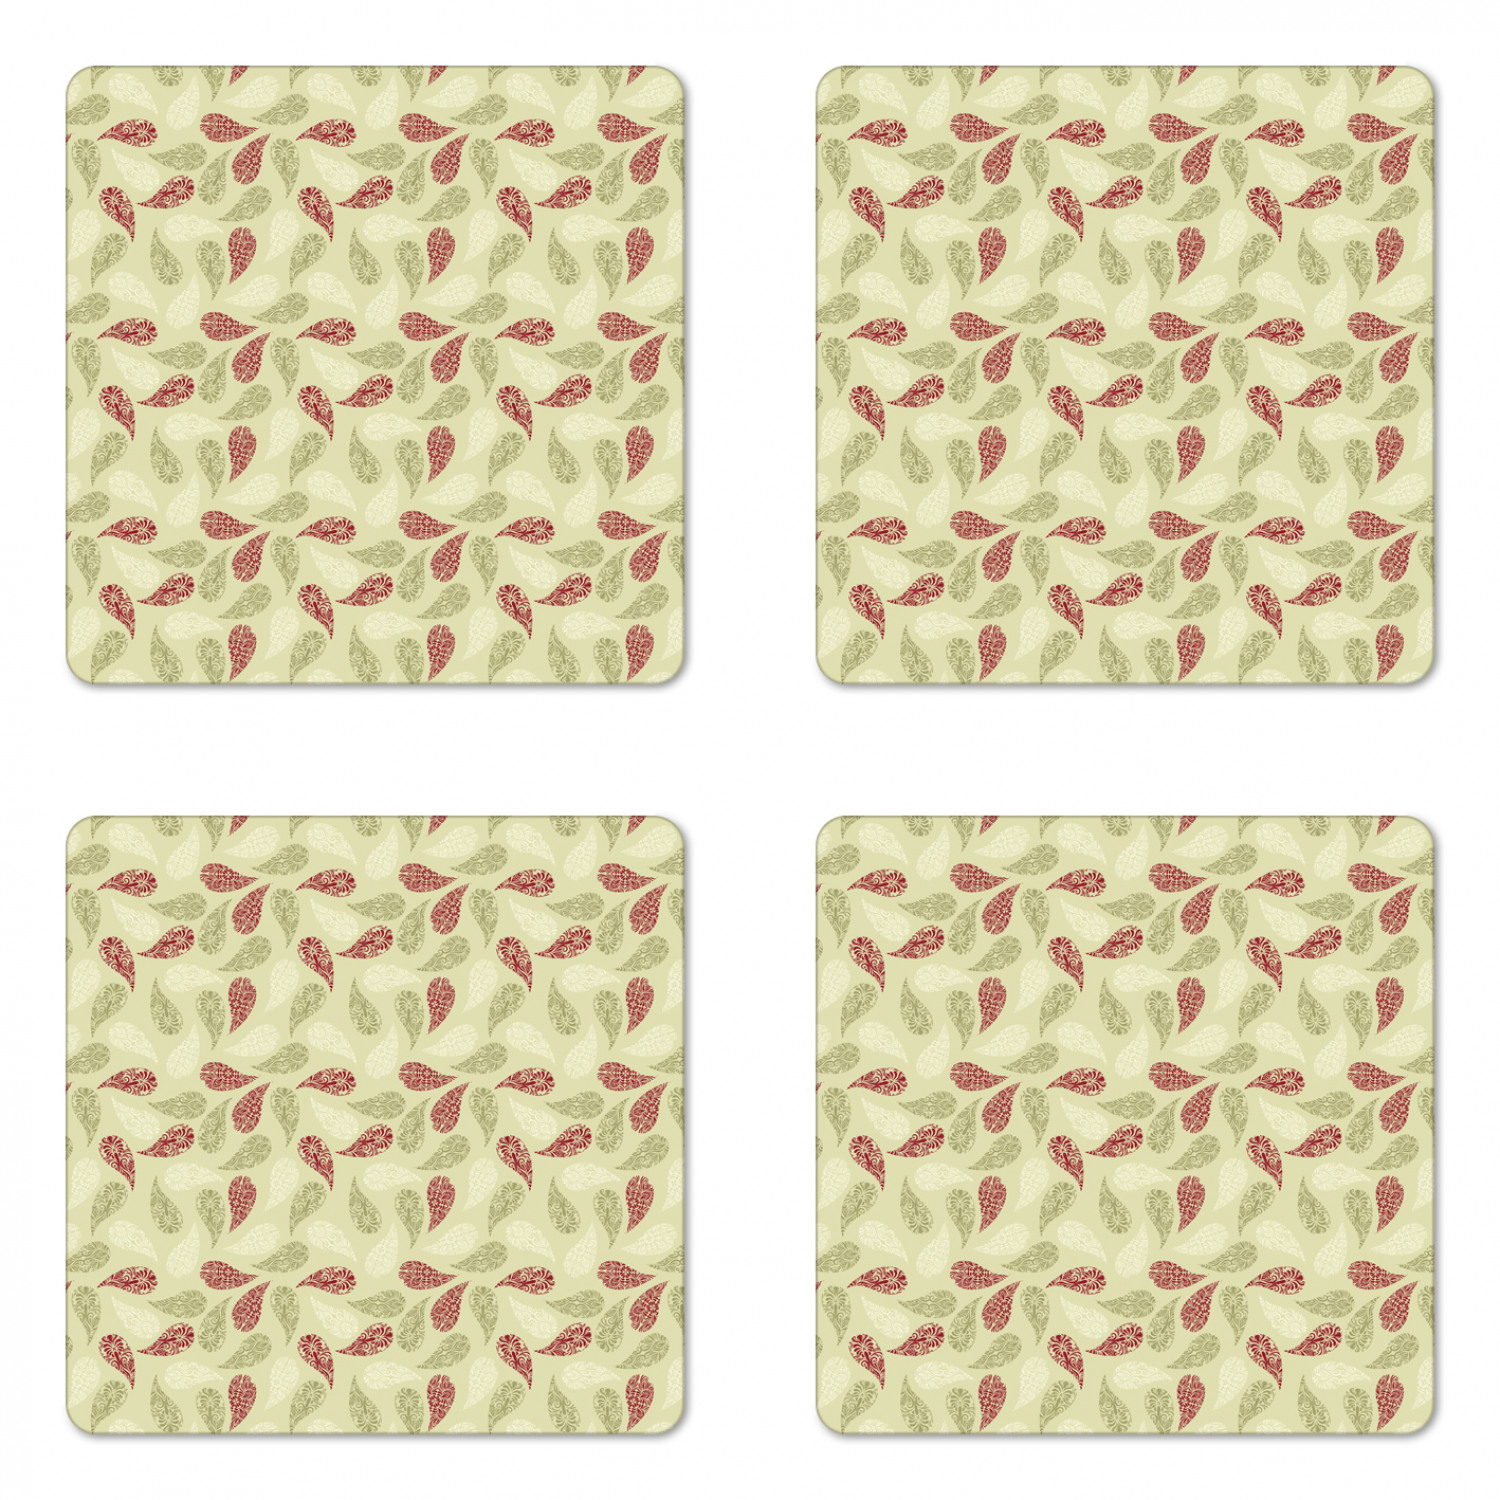 Paisley Coaster Set Of 4 Modern Design With Floral Like Patterns On The Leaf Like Shapes Print Square Hardboard Gloss Coasters Standard Size Red And Pale Green By Ambesonne Walmart Com